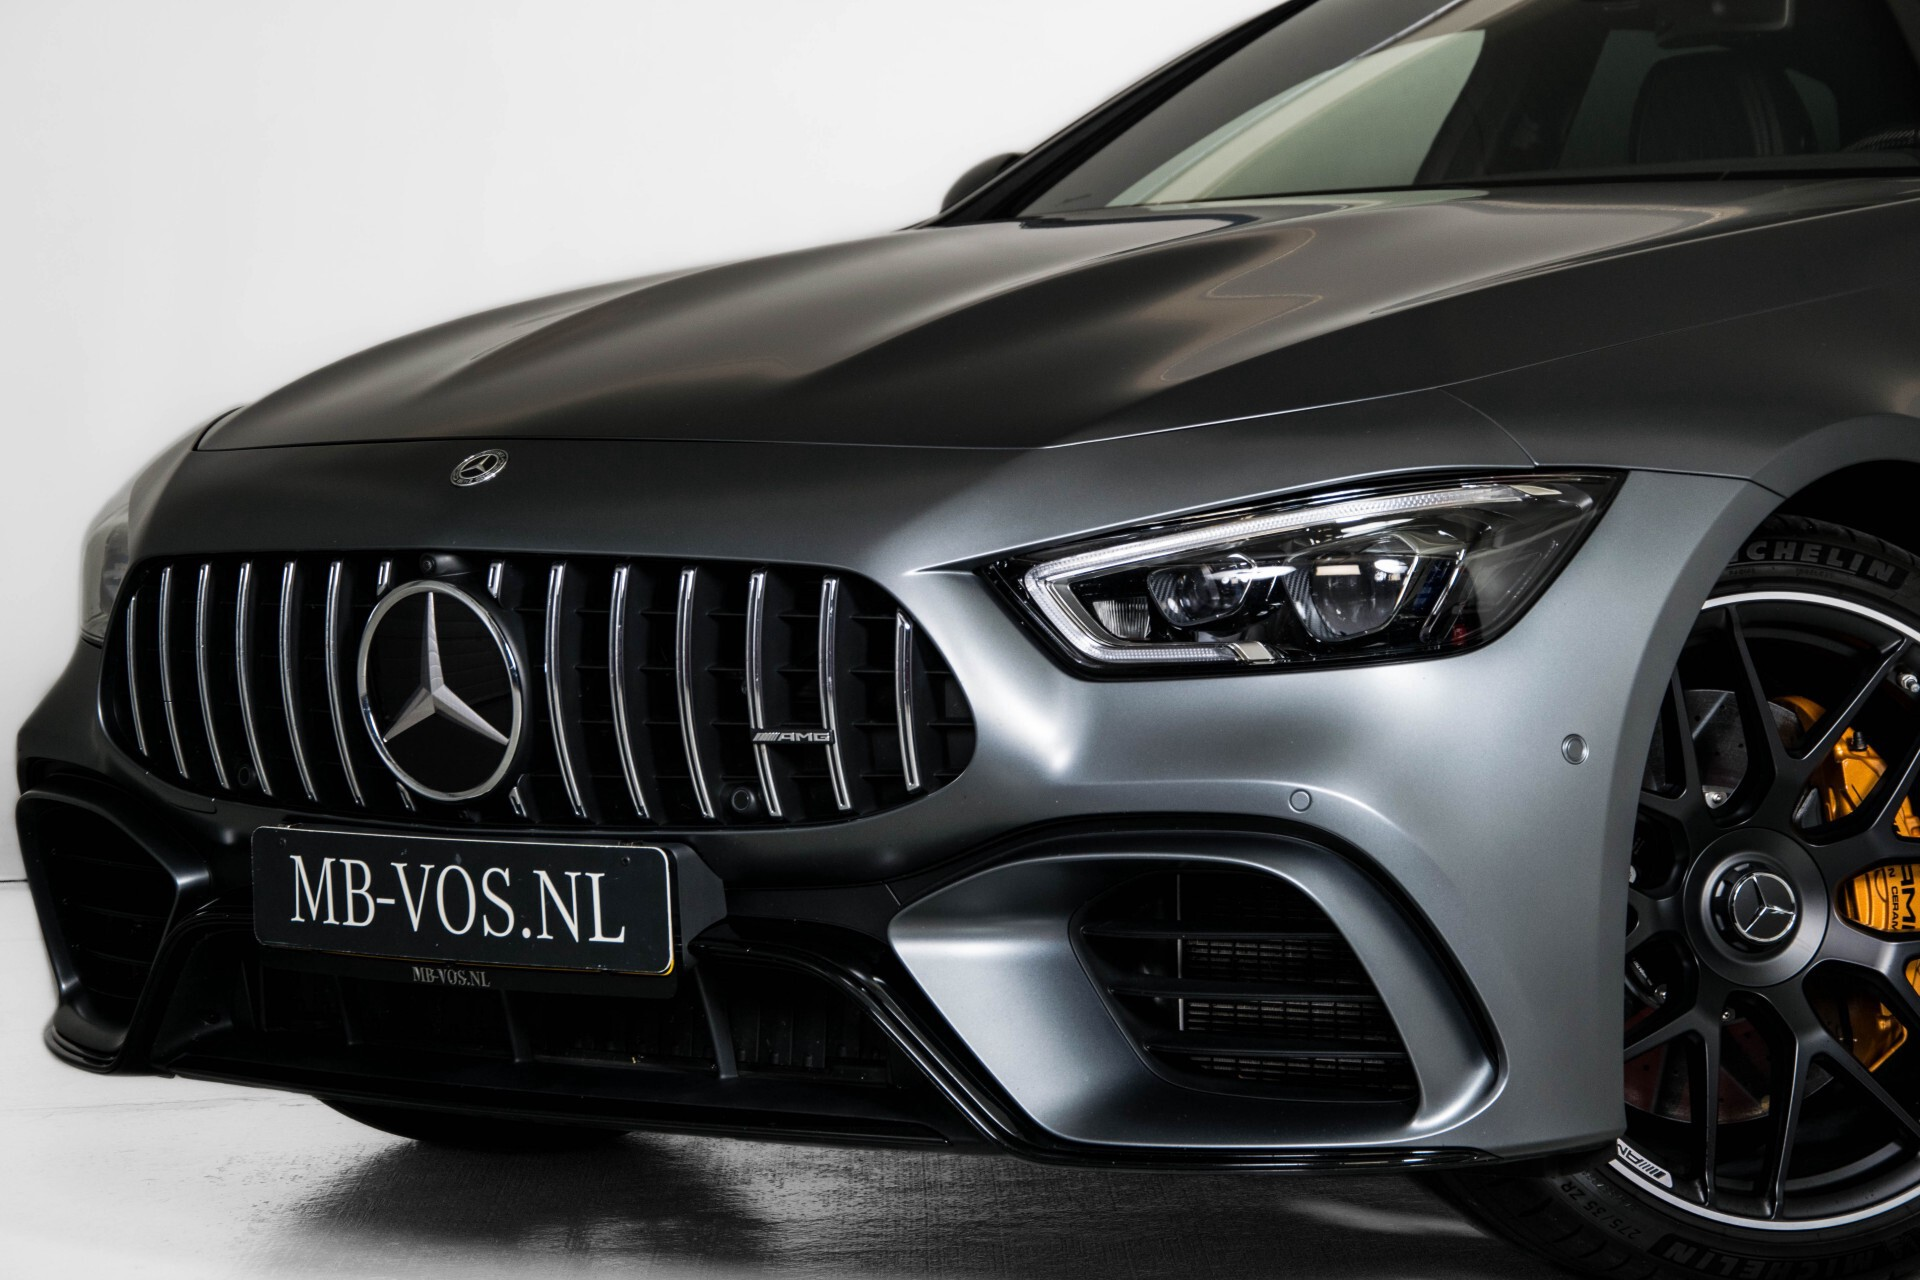 Mercedes-Benz AMG GT 4-Door Coupe 63 S 4+ Ceramic/Designo/Carbon/Burmester 3D/TV/Massage Aut9 Foto 71